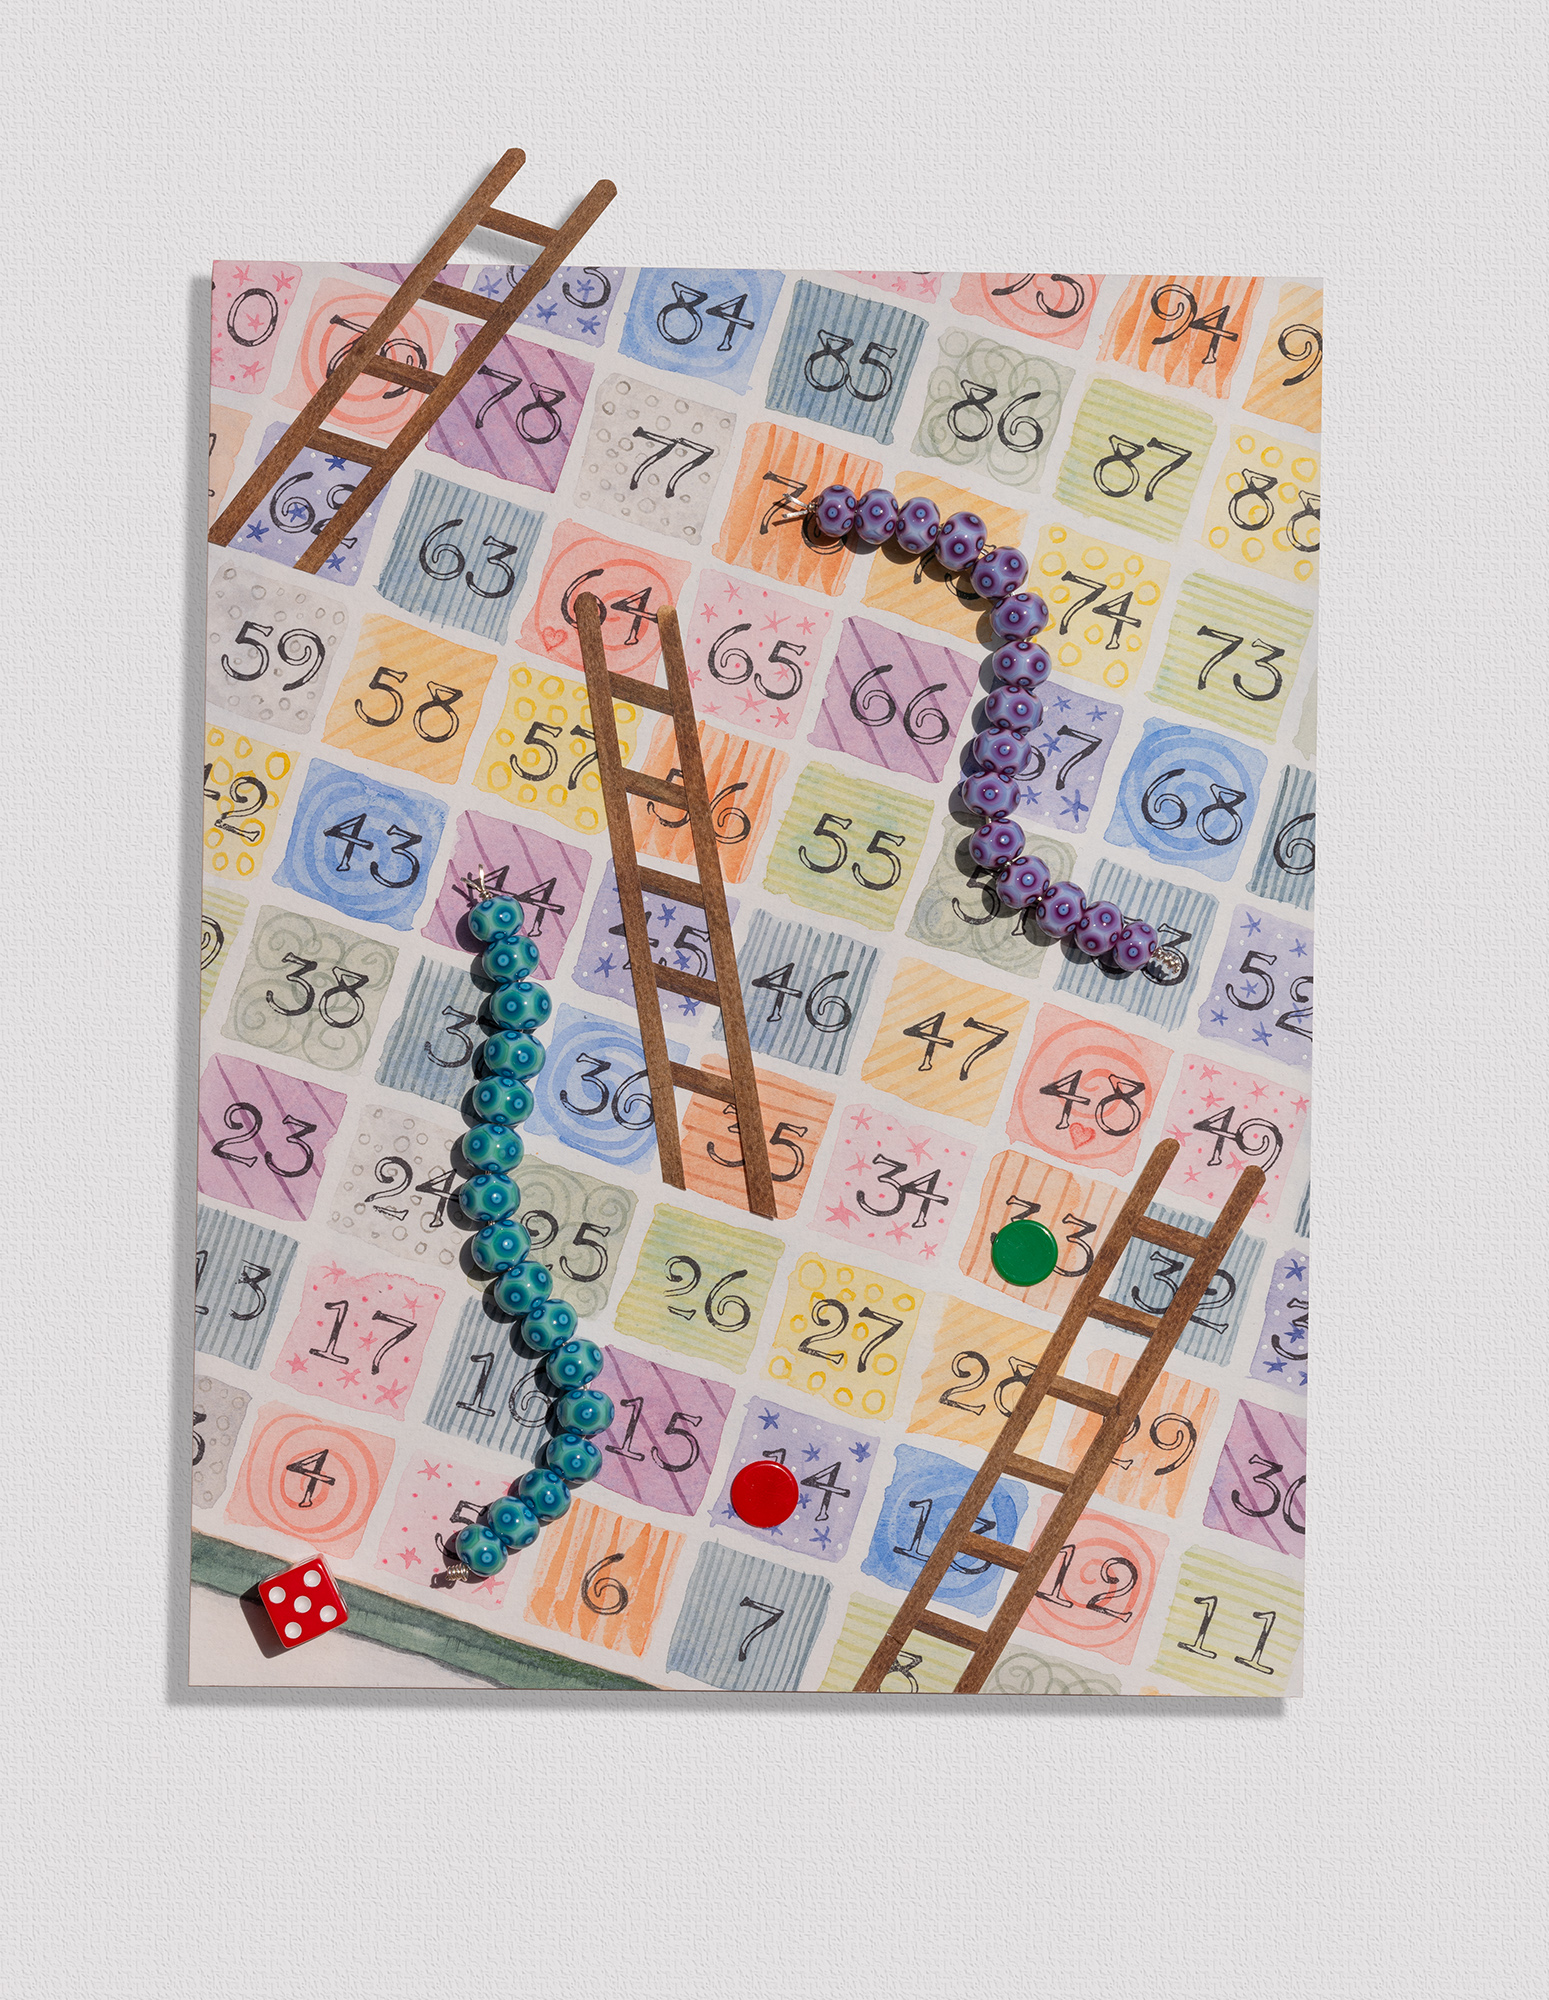 RebeccaWeddell_Snakes_and_Ladders_01.jpg